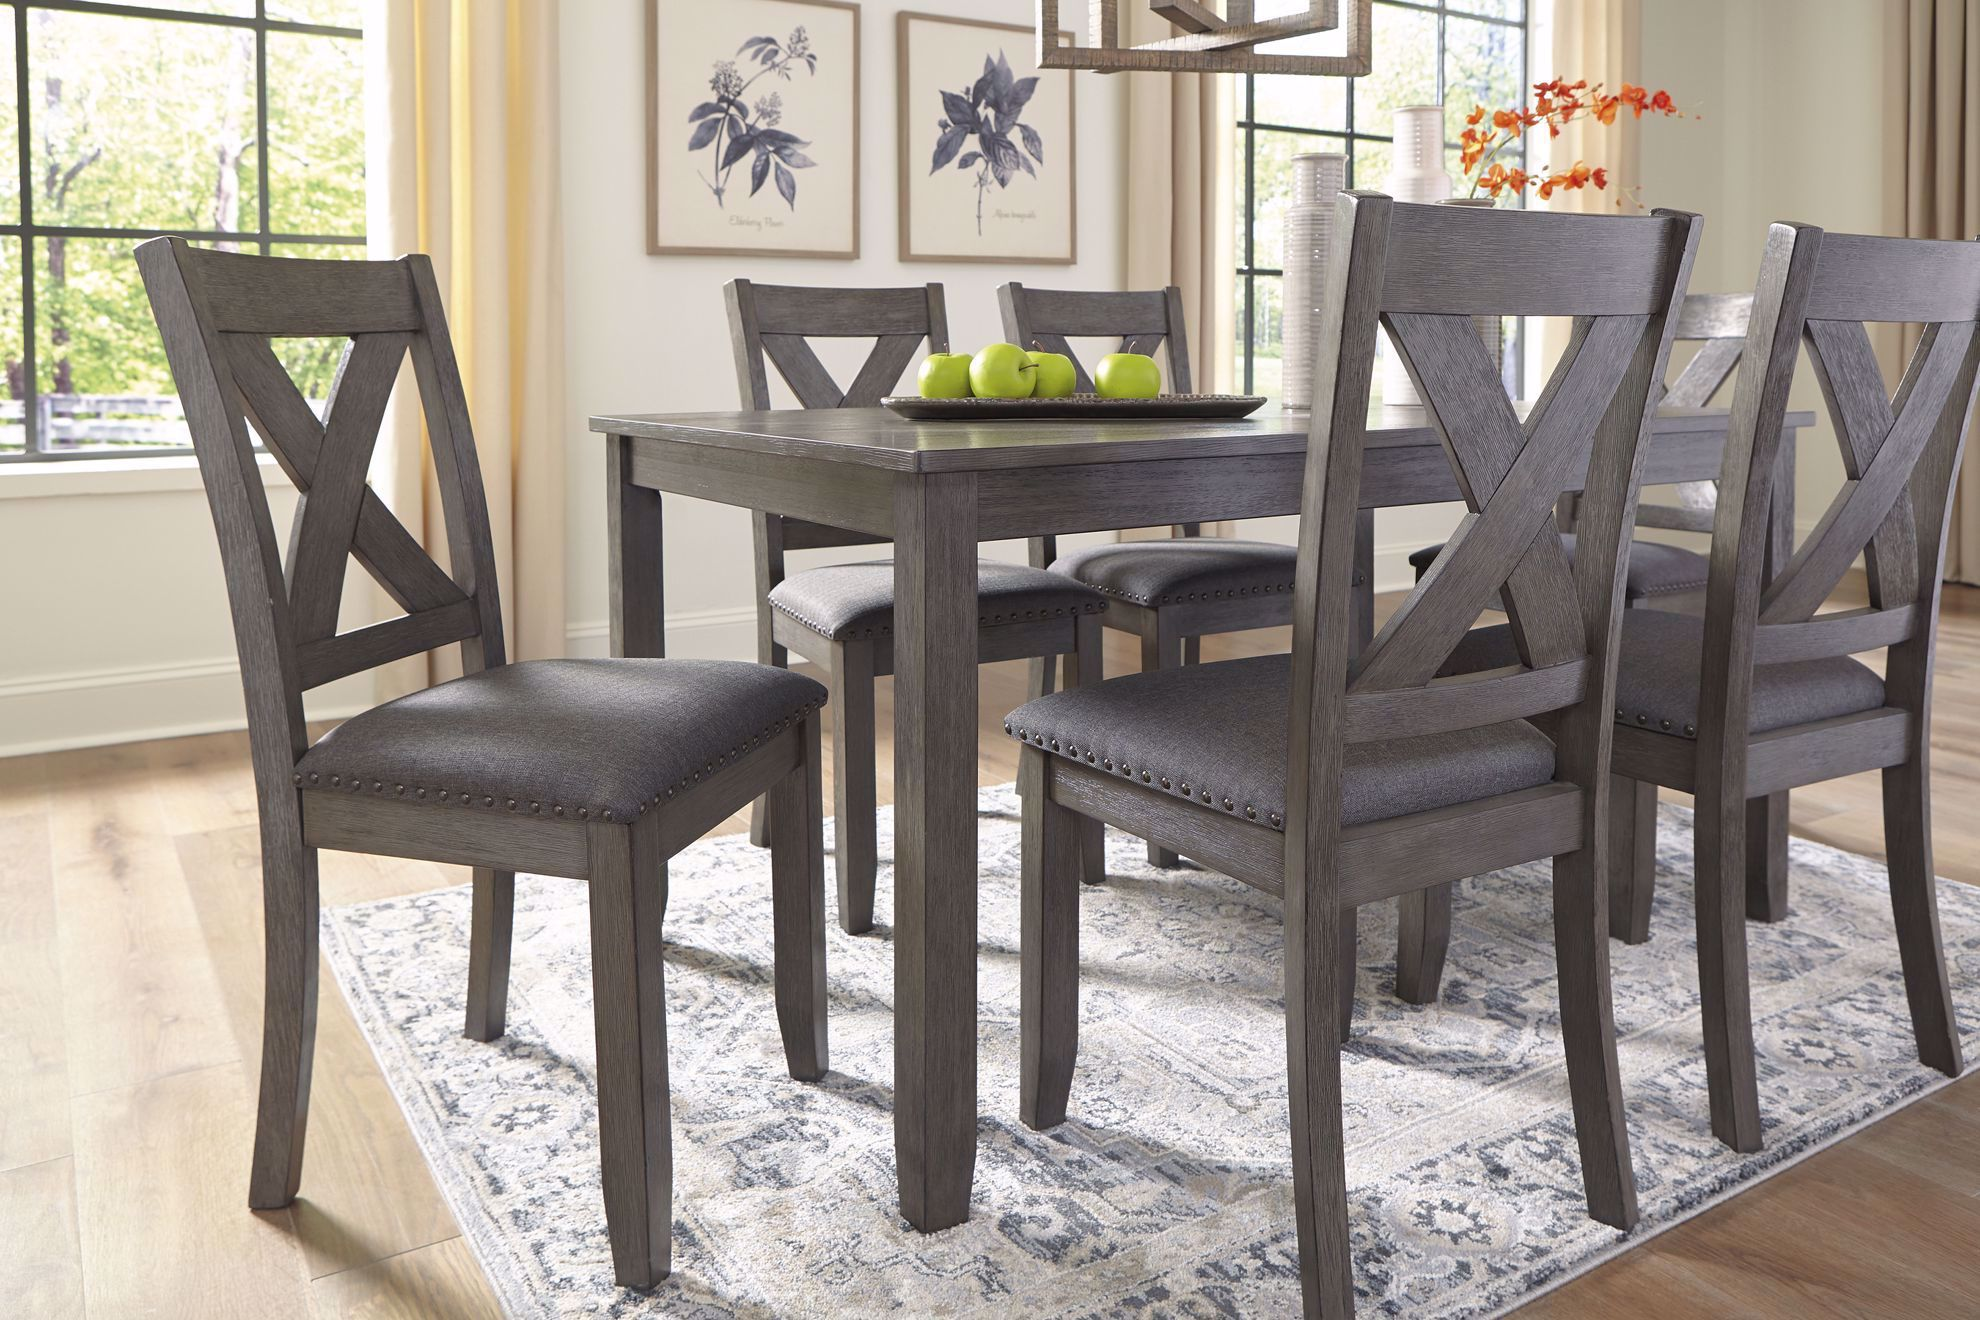 Picture of Caitbrook Dining Table & 6 Chairs